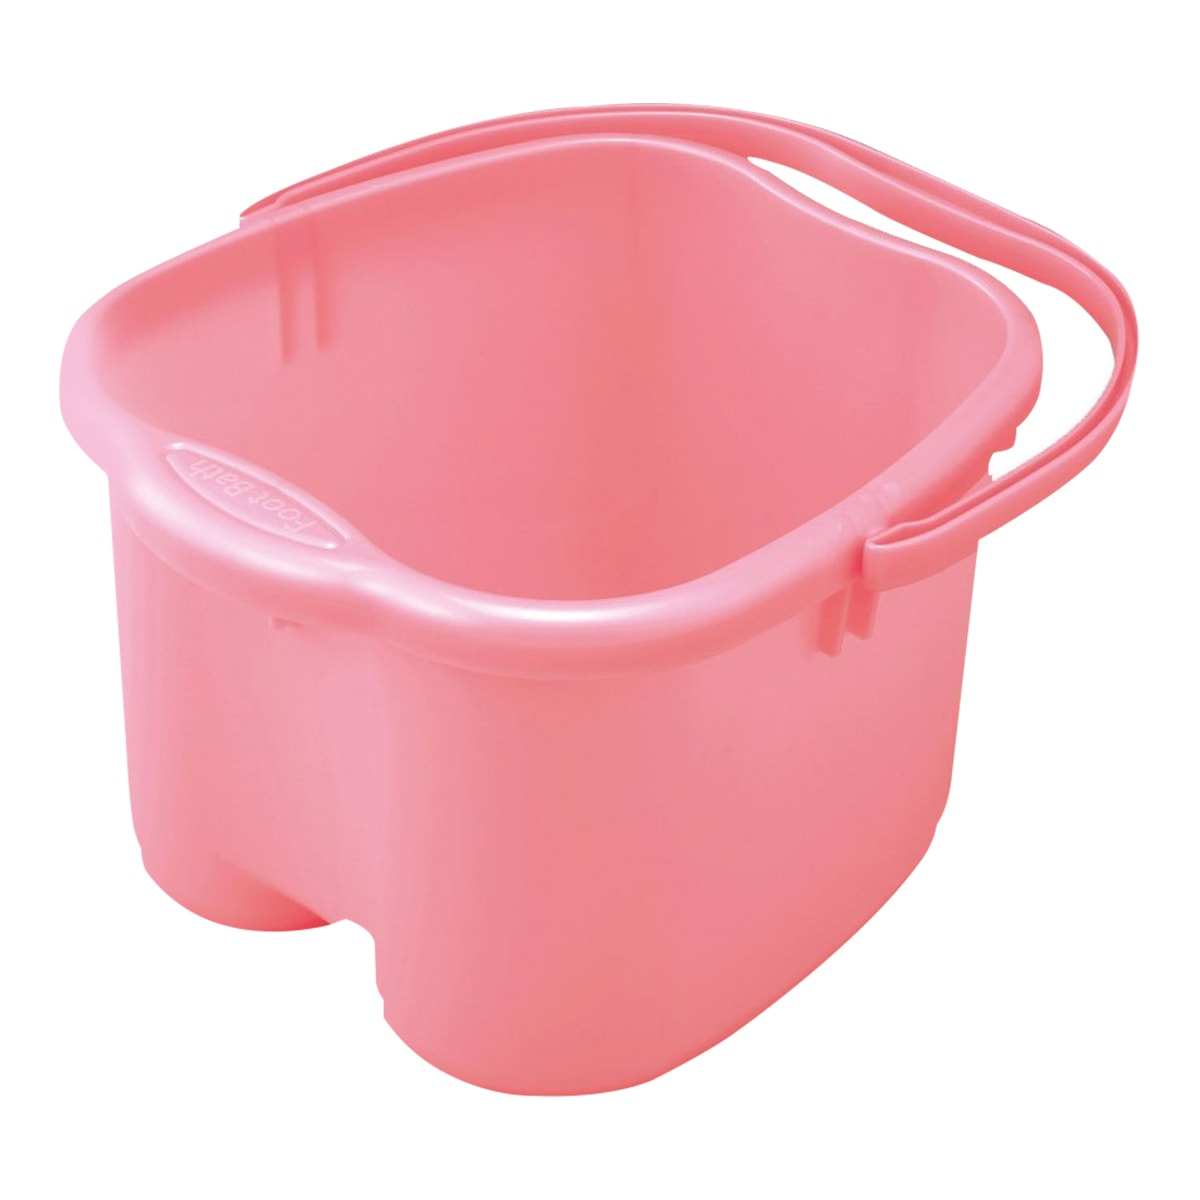 Yamibuy.com:Customer reviews:INOMATA Foot Detox Massage Bucket Pearl Pink